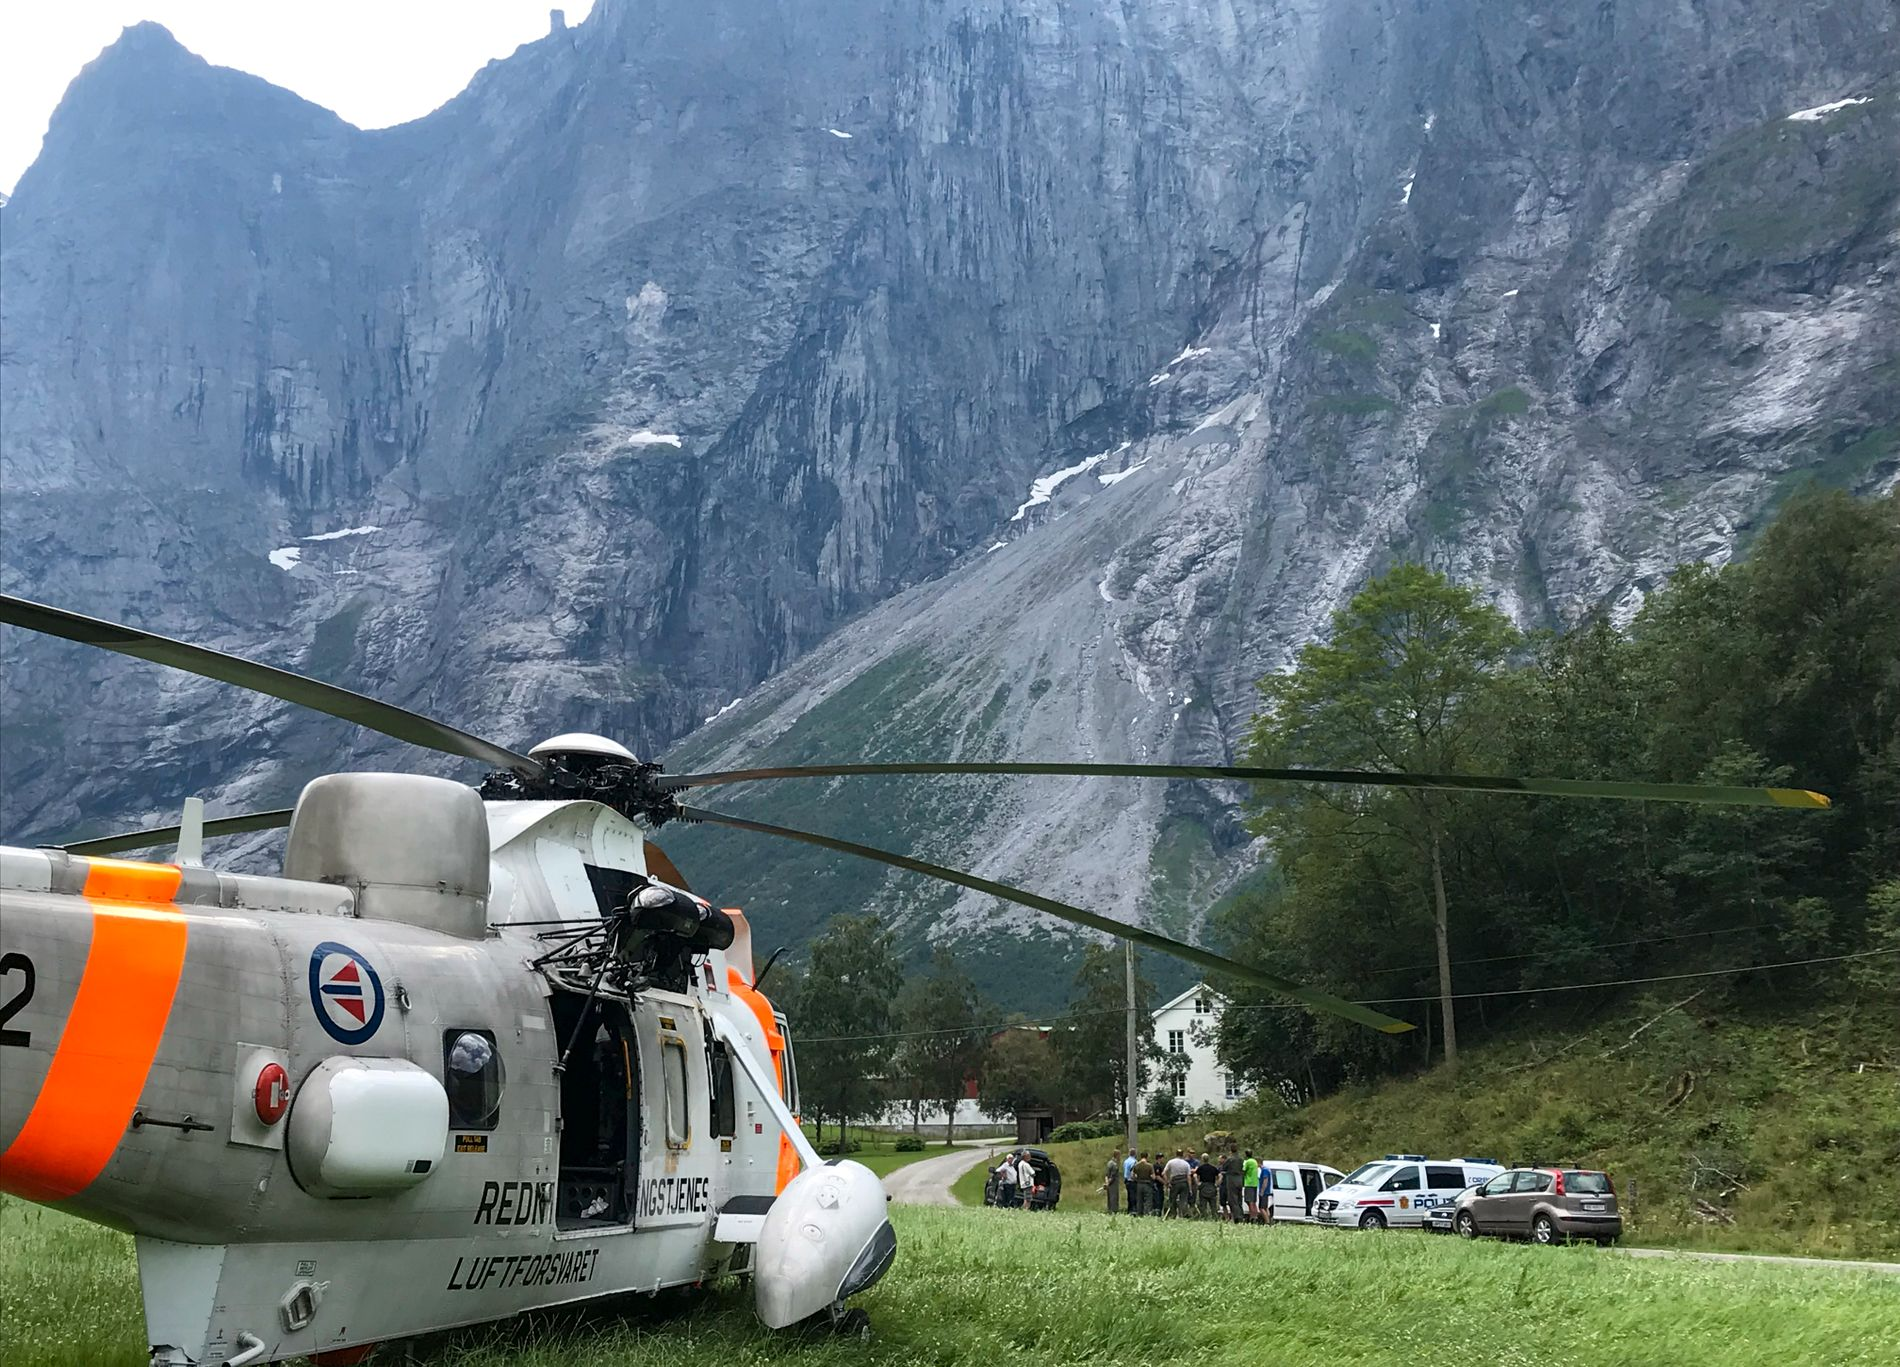 ADJUSTMENT: Rescue helicopters, police and investigative crews are on the floor of the valley below the Troll Wall in July.